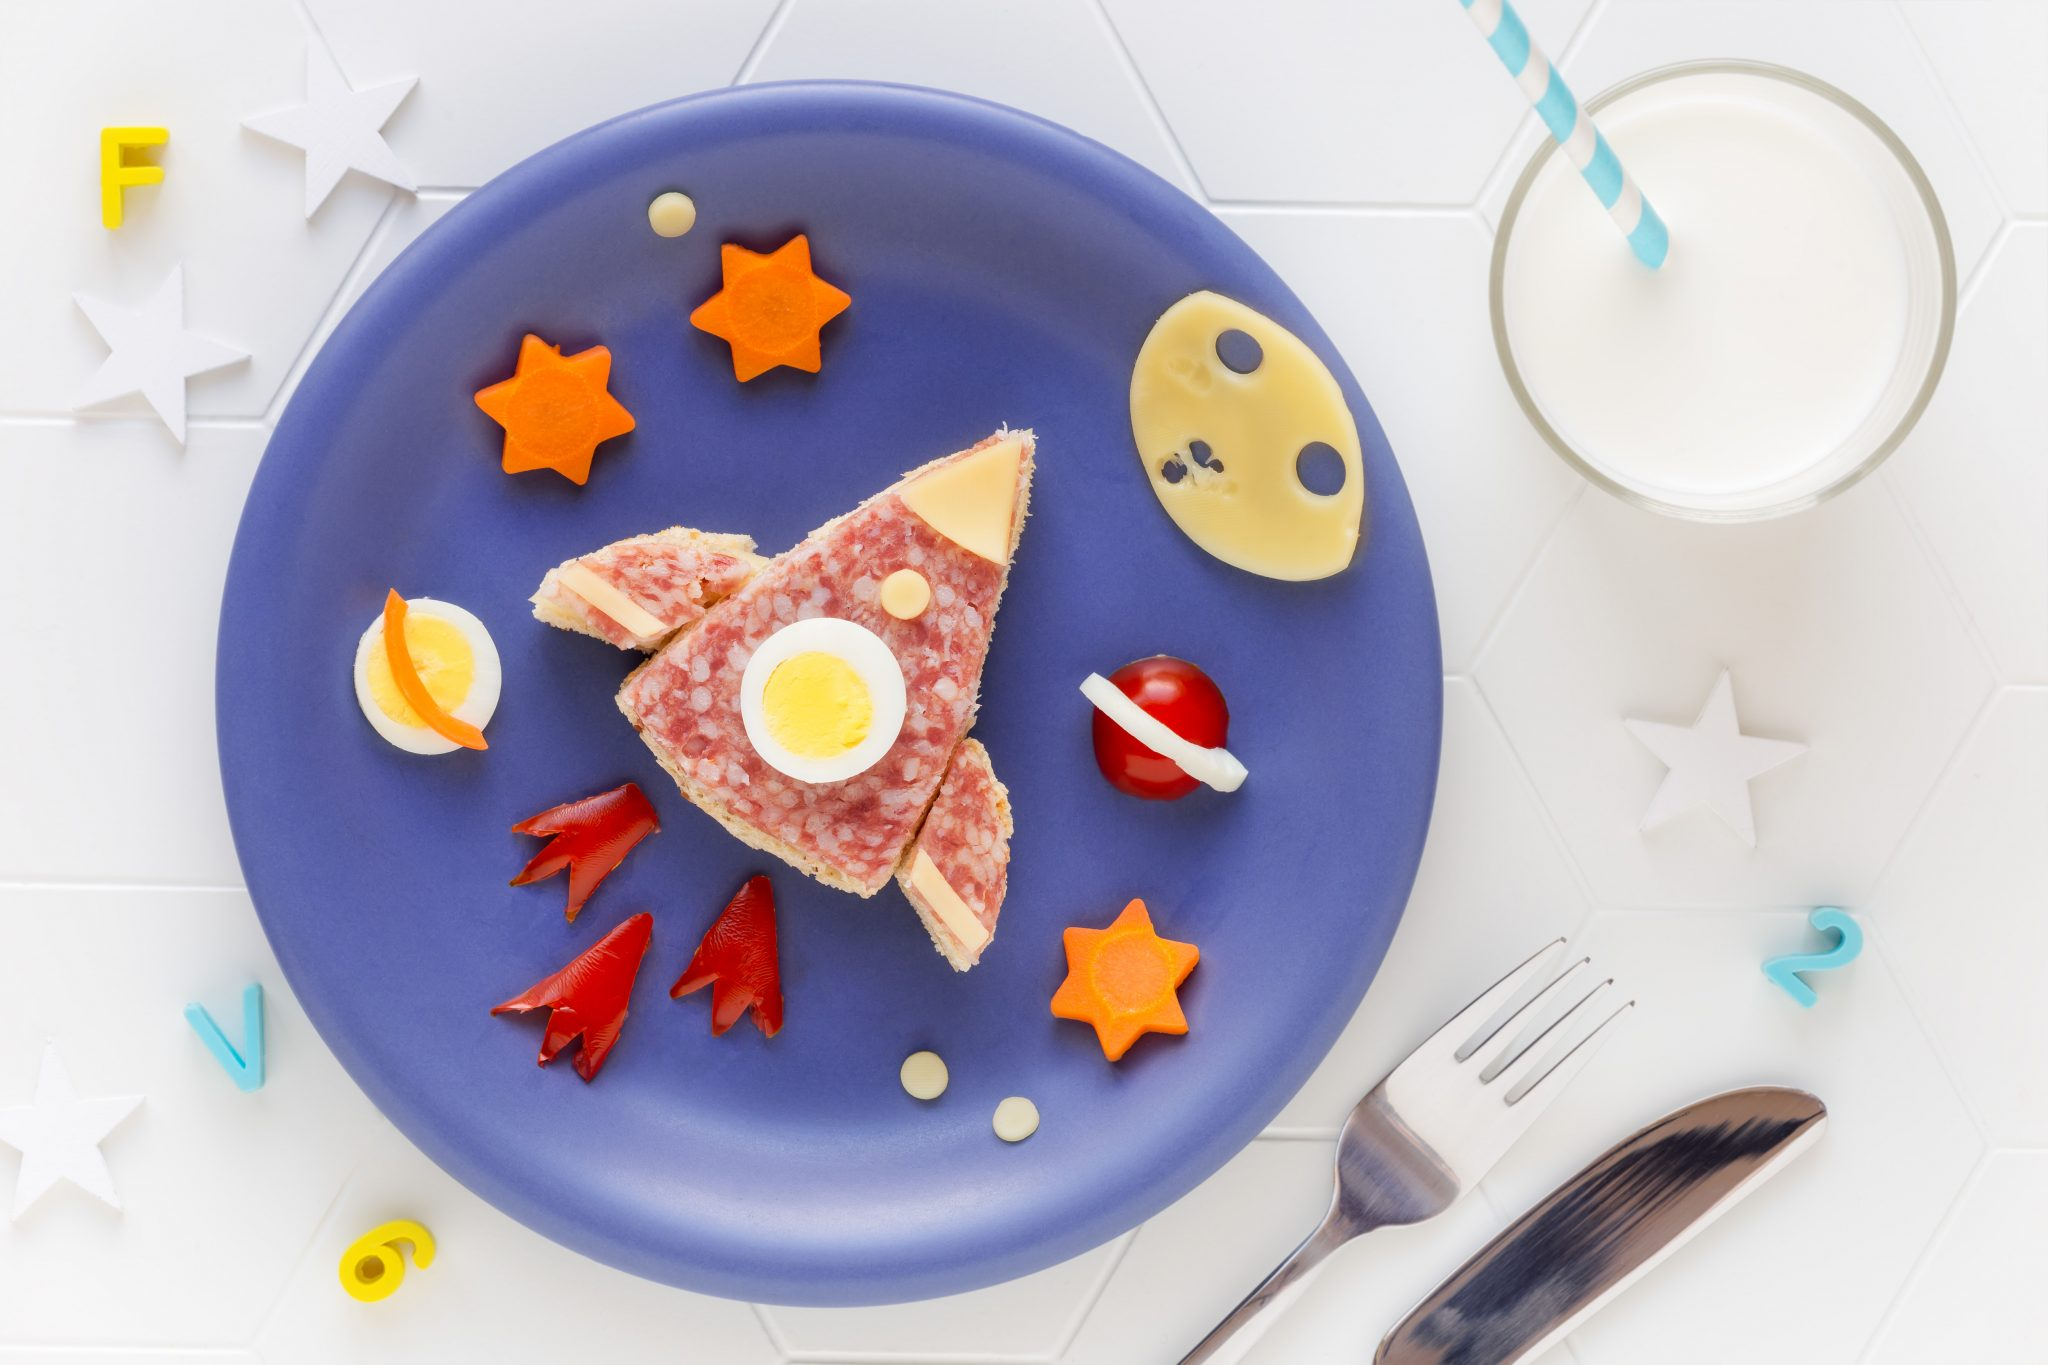 rocket or space shuttle shaped sandwich with cheese and salami decorated with stars, moon and planets on a blue plate